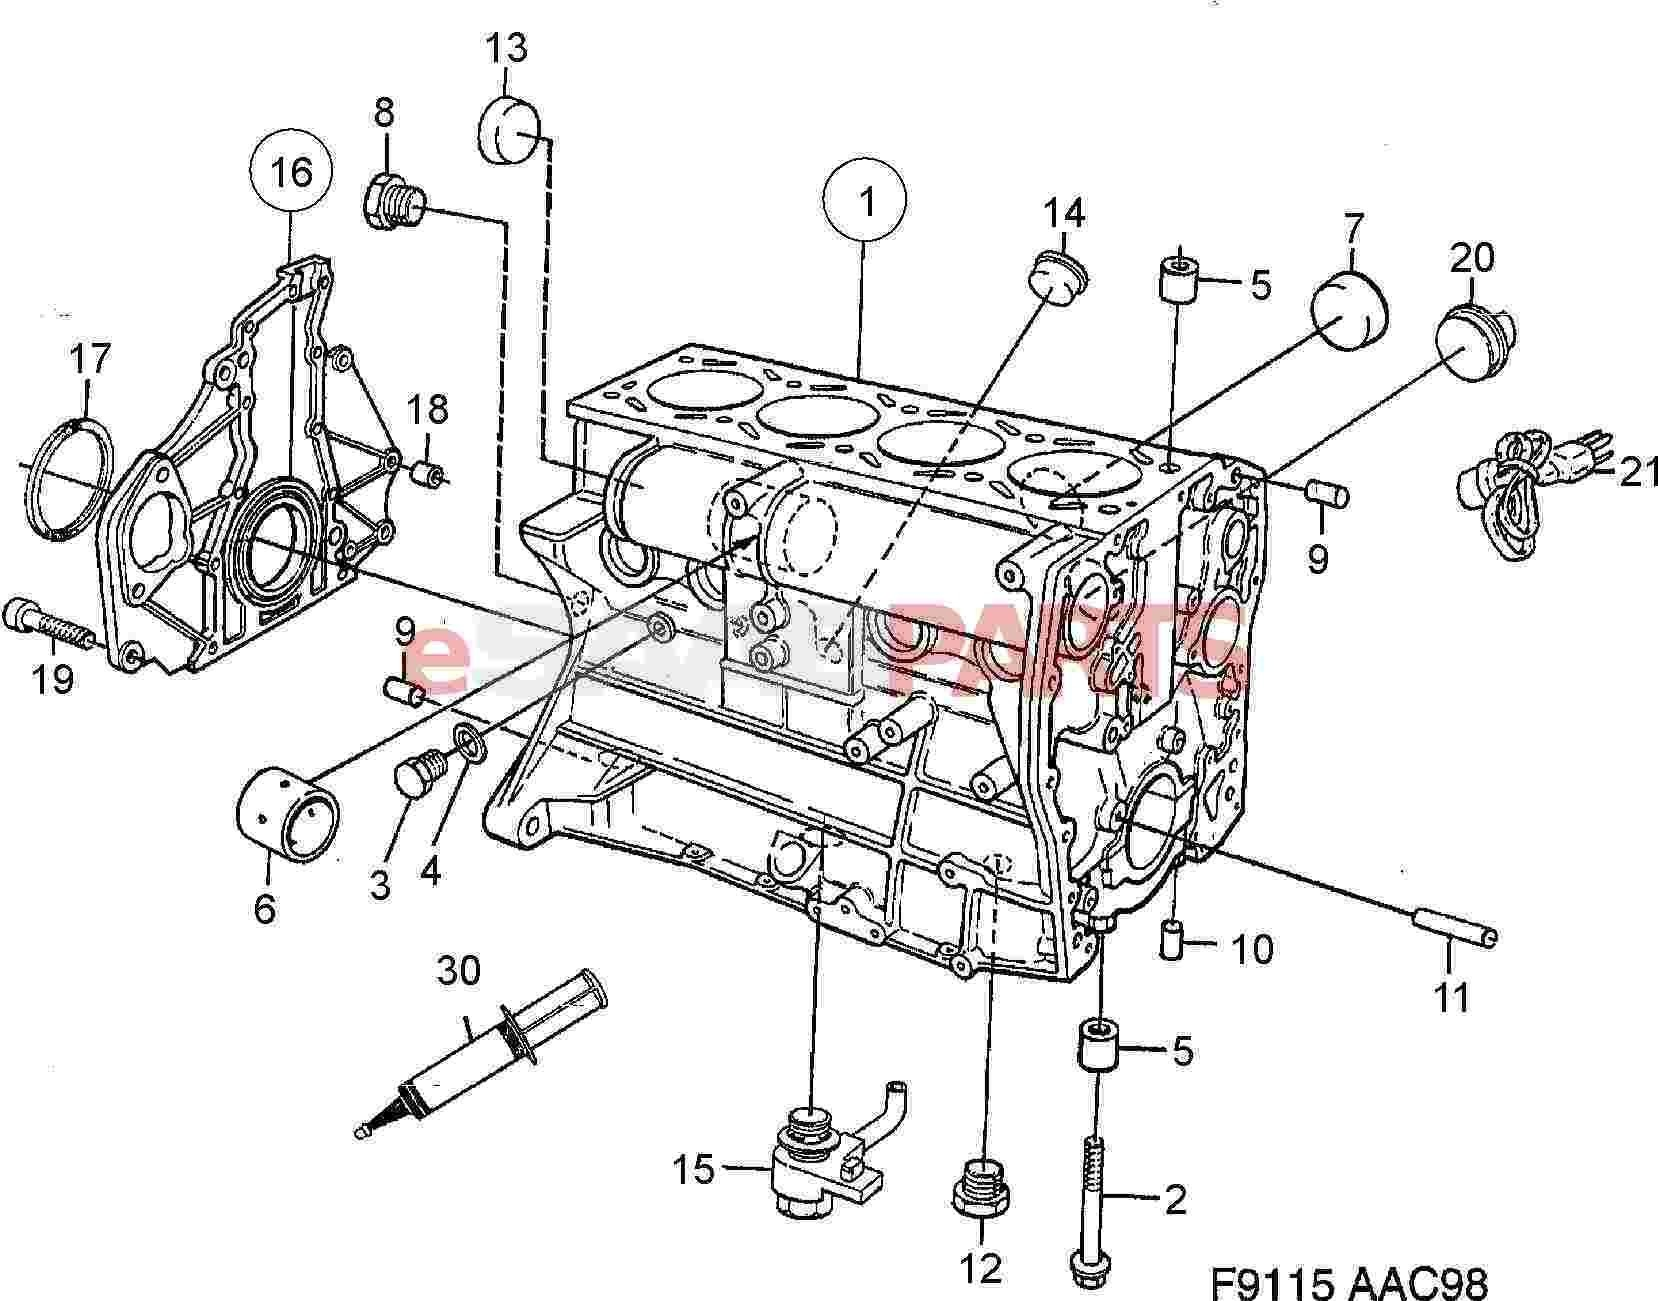 bodine emergency ballast b90 wiring diagram 1a